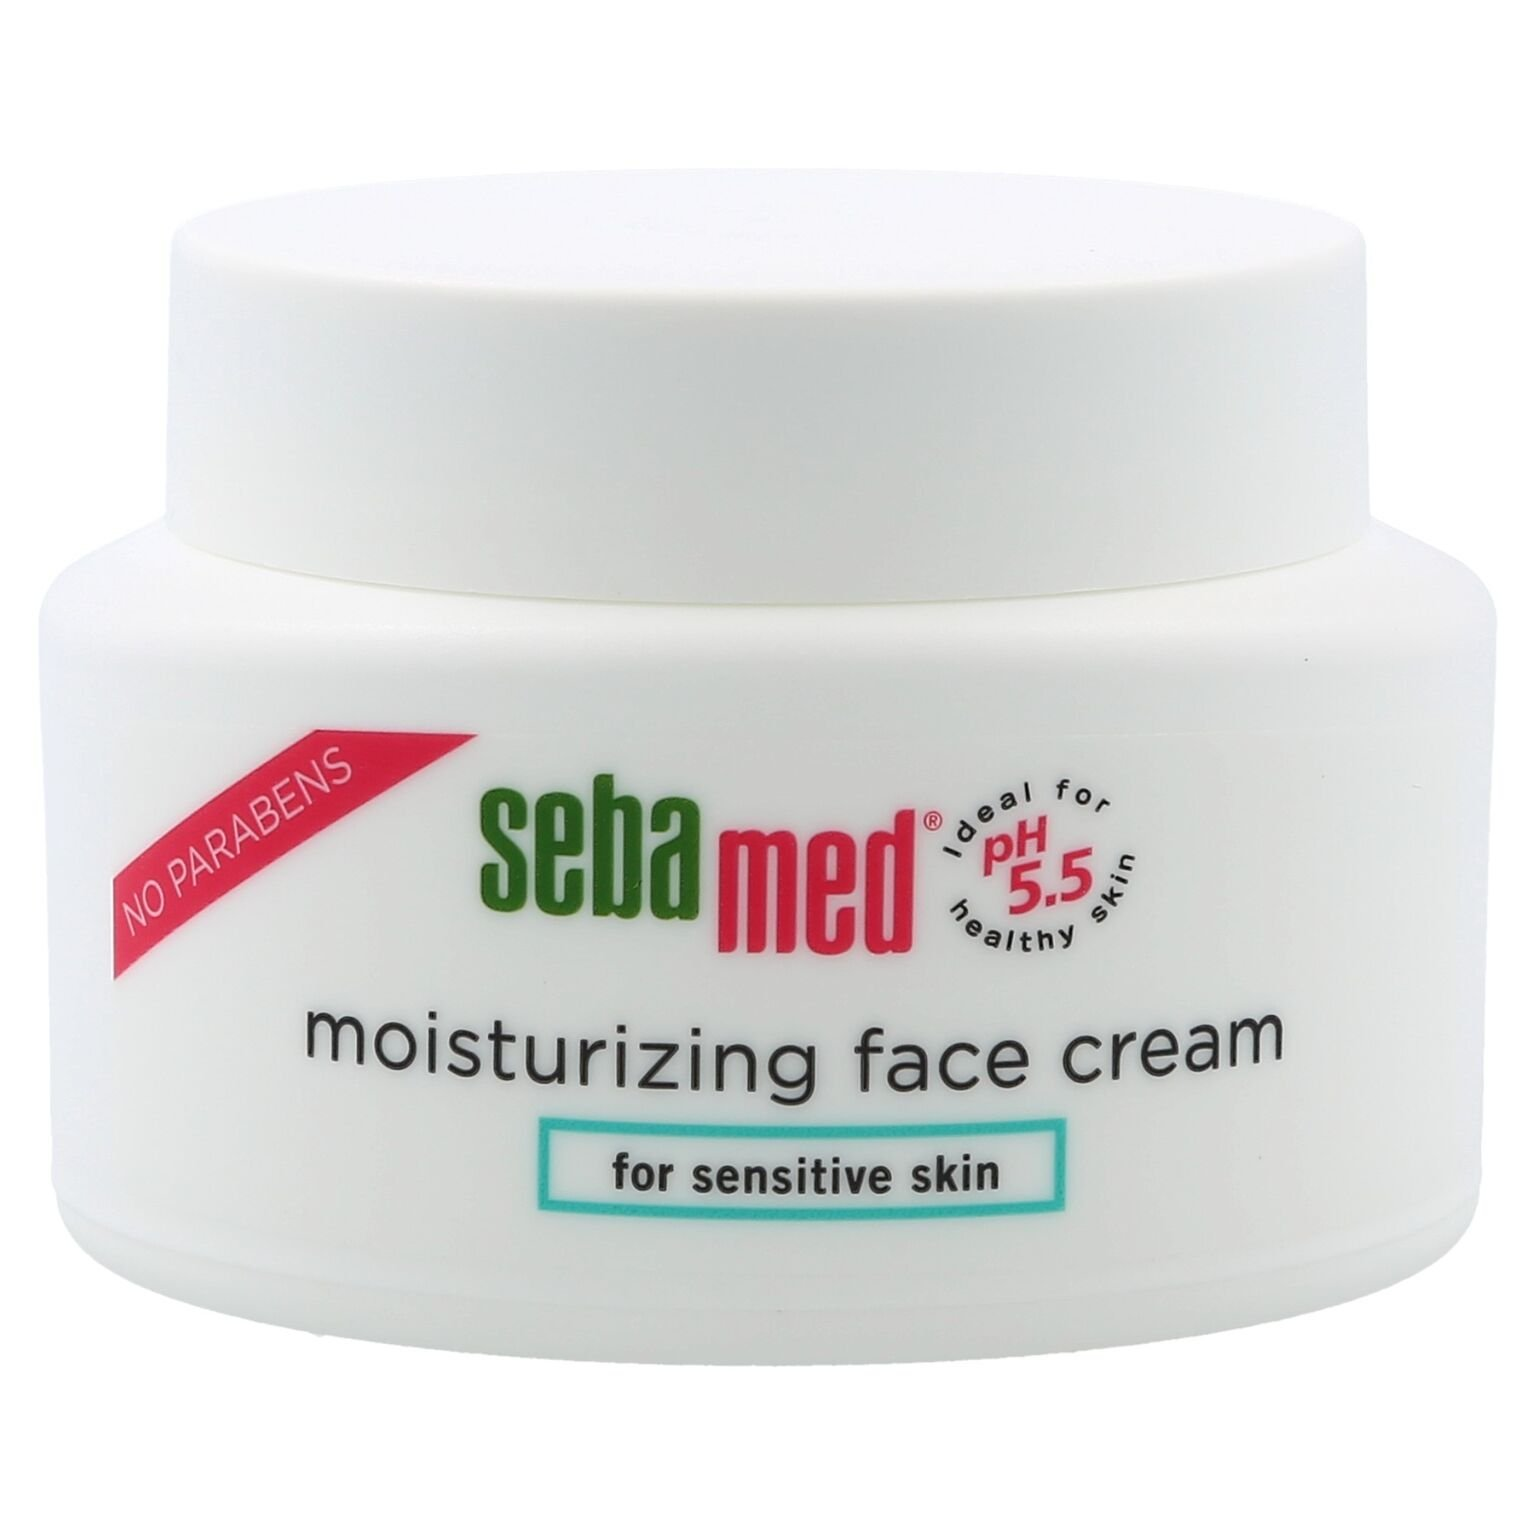 Sebamed Clear Face Antibacterial Cleansing Foam 150ml Ph 55 For Acne Prone Moisturizing Cream Sensitive Skin Hypoallergenic Ultra Hydrating With Vitamin E Dermatologist